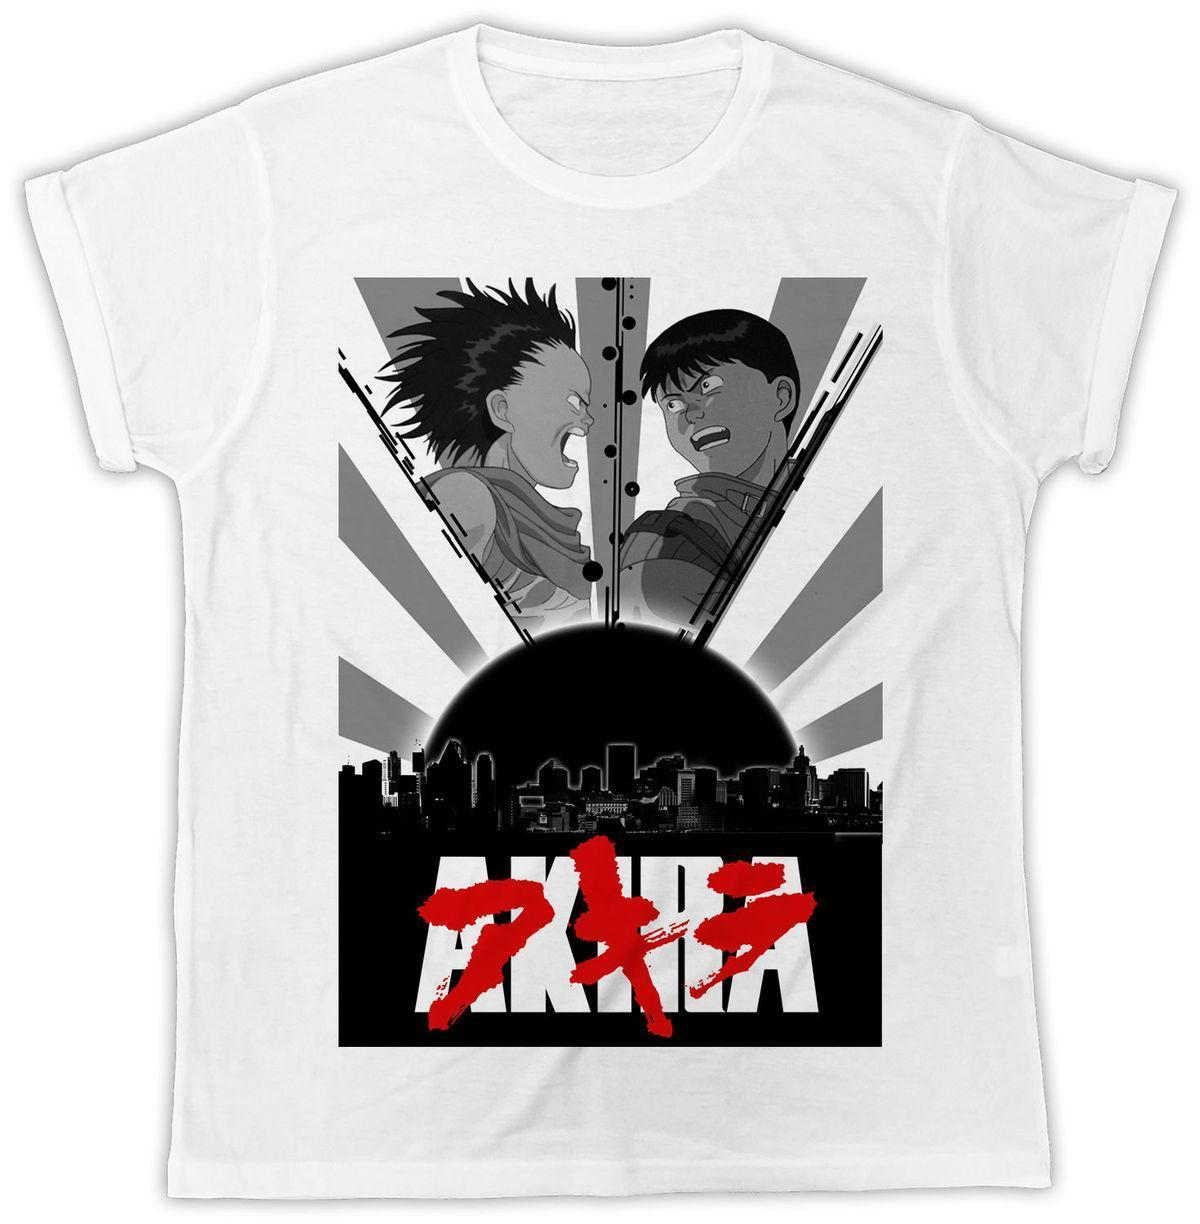 AKIRA MOVIE POSTER IDEAL BIRTHDAY GIFT DESIGNER COOL MENS T SHIRT Comedy Shirt Humorous From Yuxin0001 1467